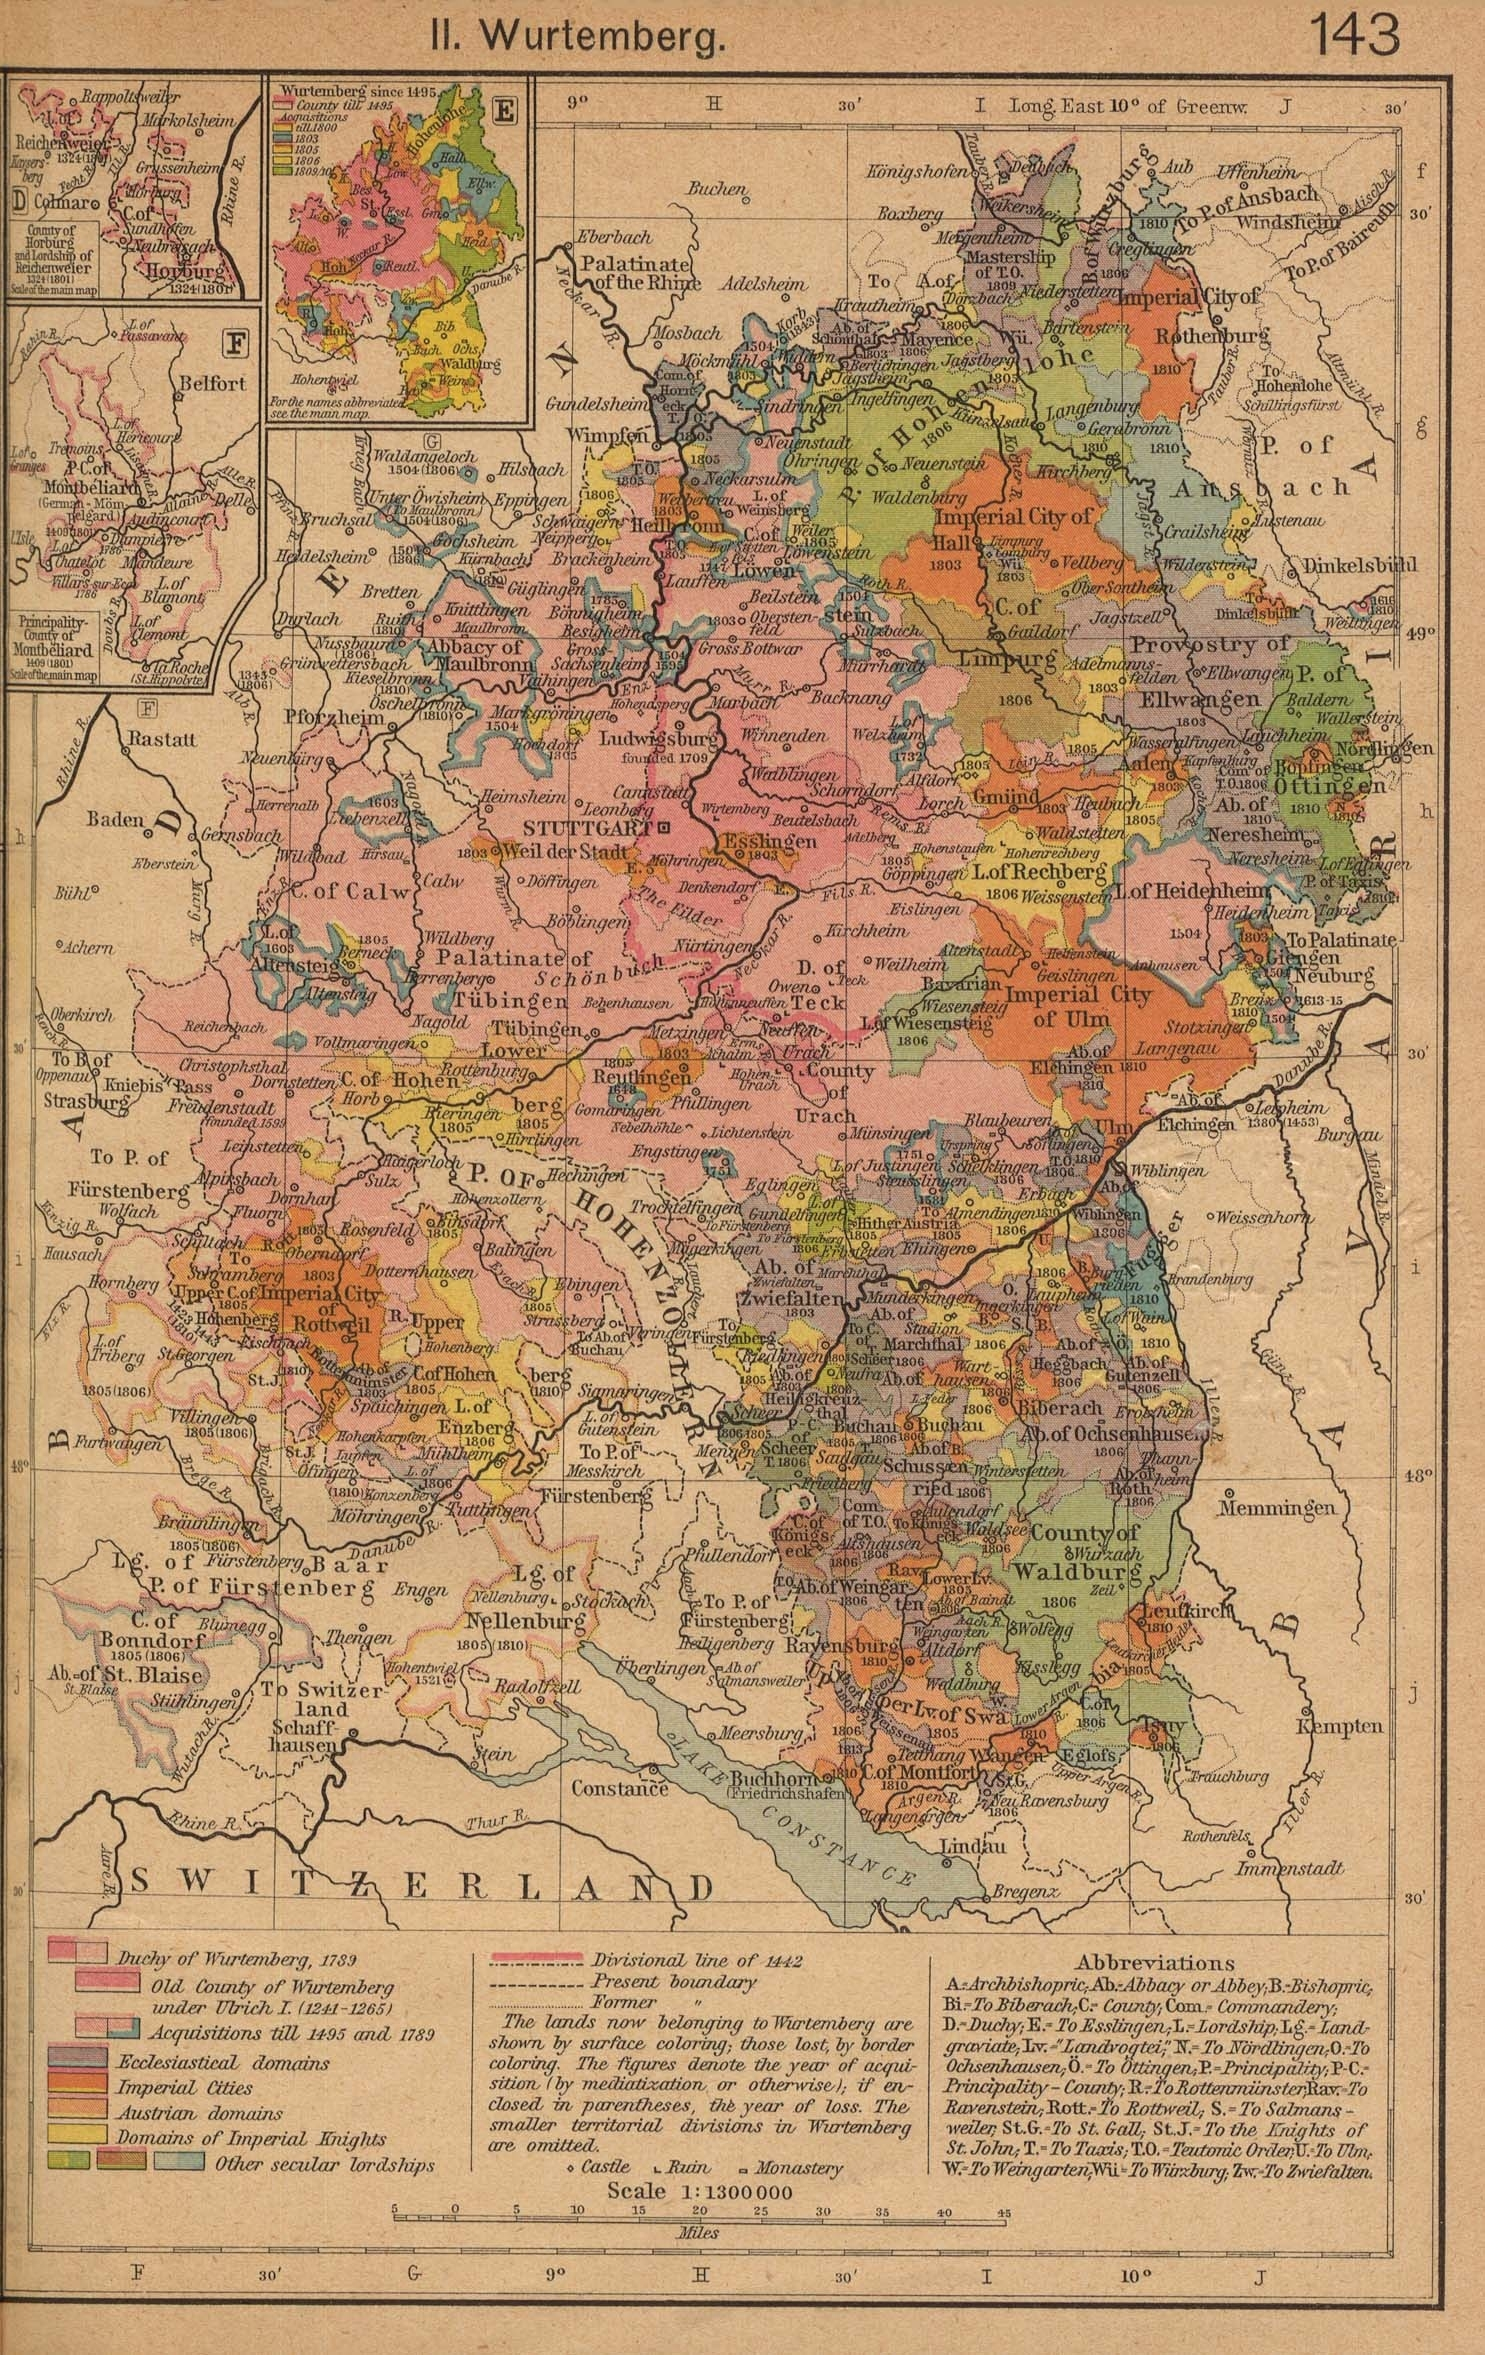 Germany Maps - Perry-Castañeda Map Collection - Ut Library Online with regard to Maps Of Germany Throughout History